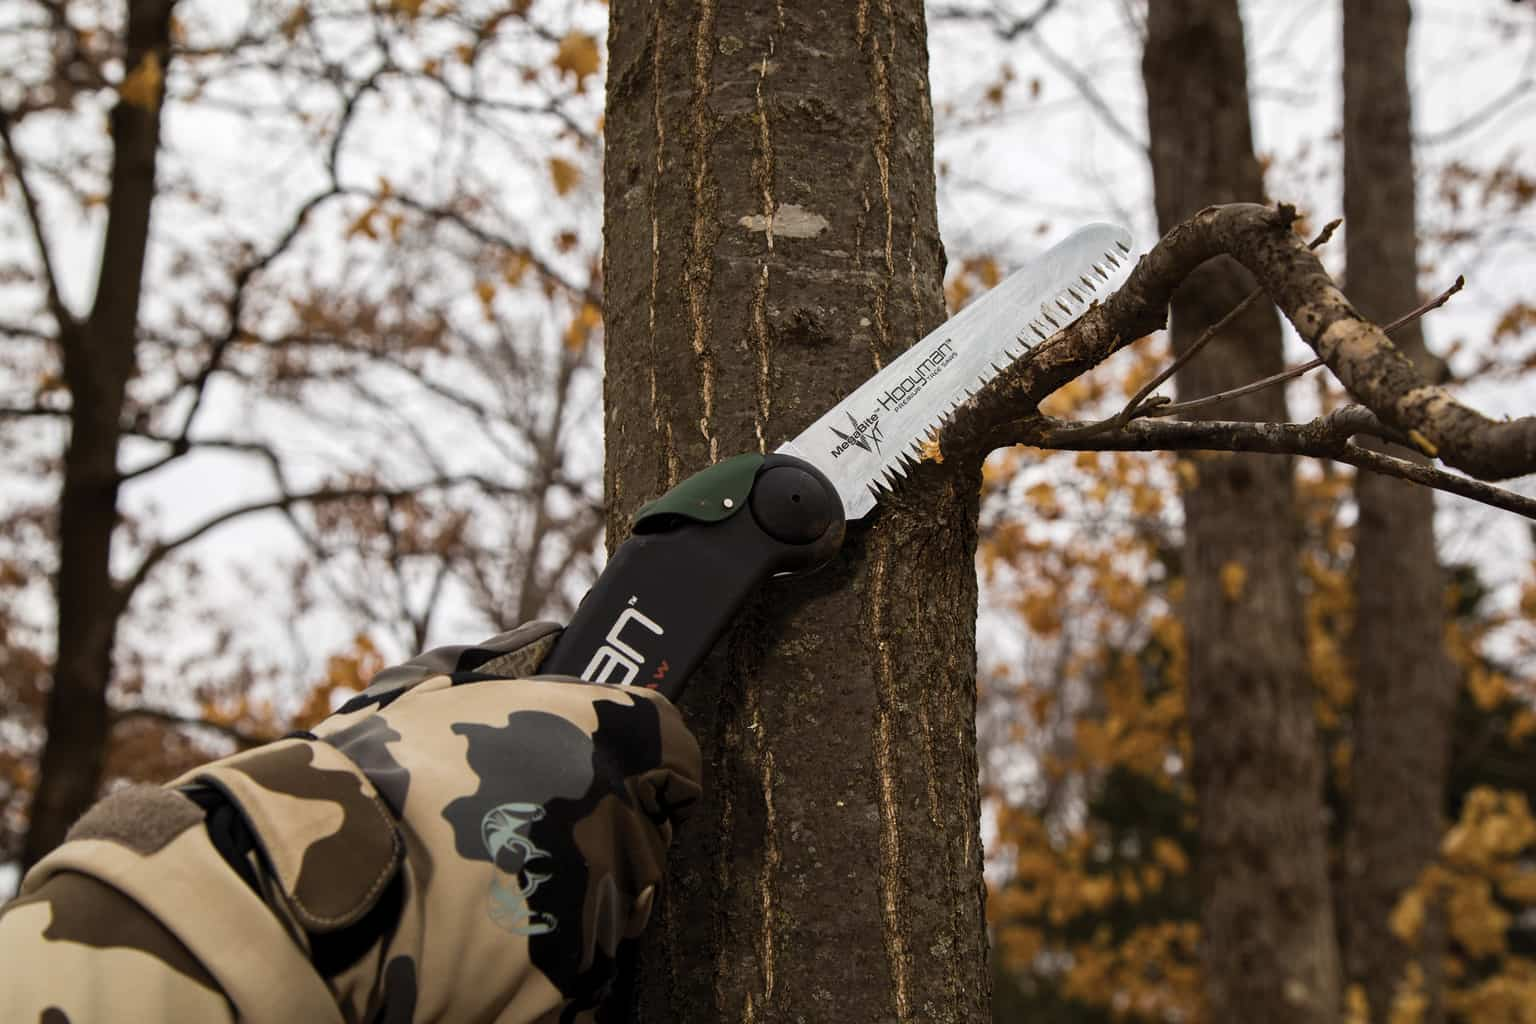 Extendable Tree Saw : Ft extendable tree saw battenfeld